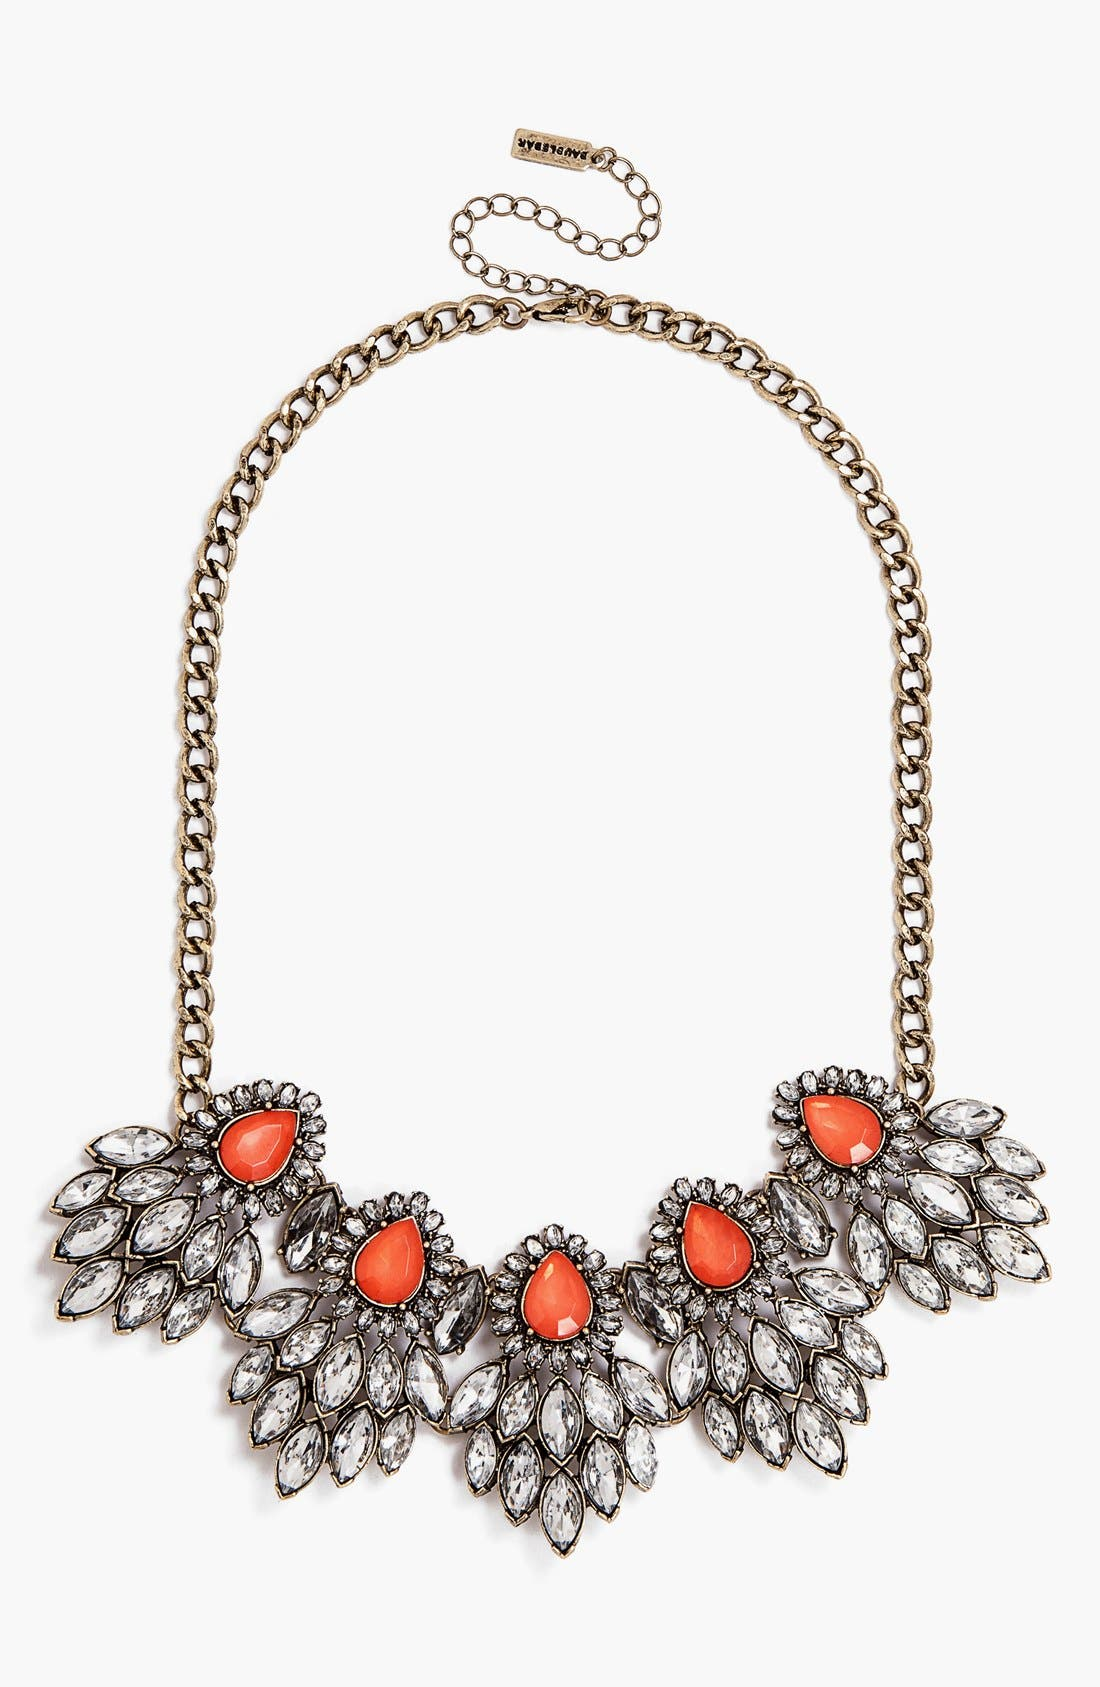 Main Image - BaubleBar 'Peacock Cluster' Frontal Necklace